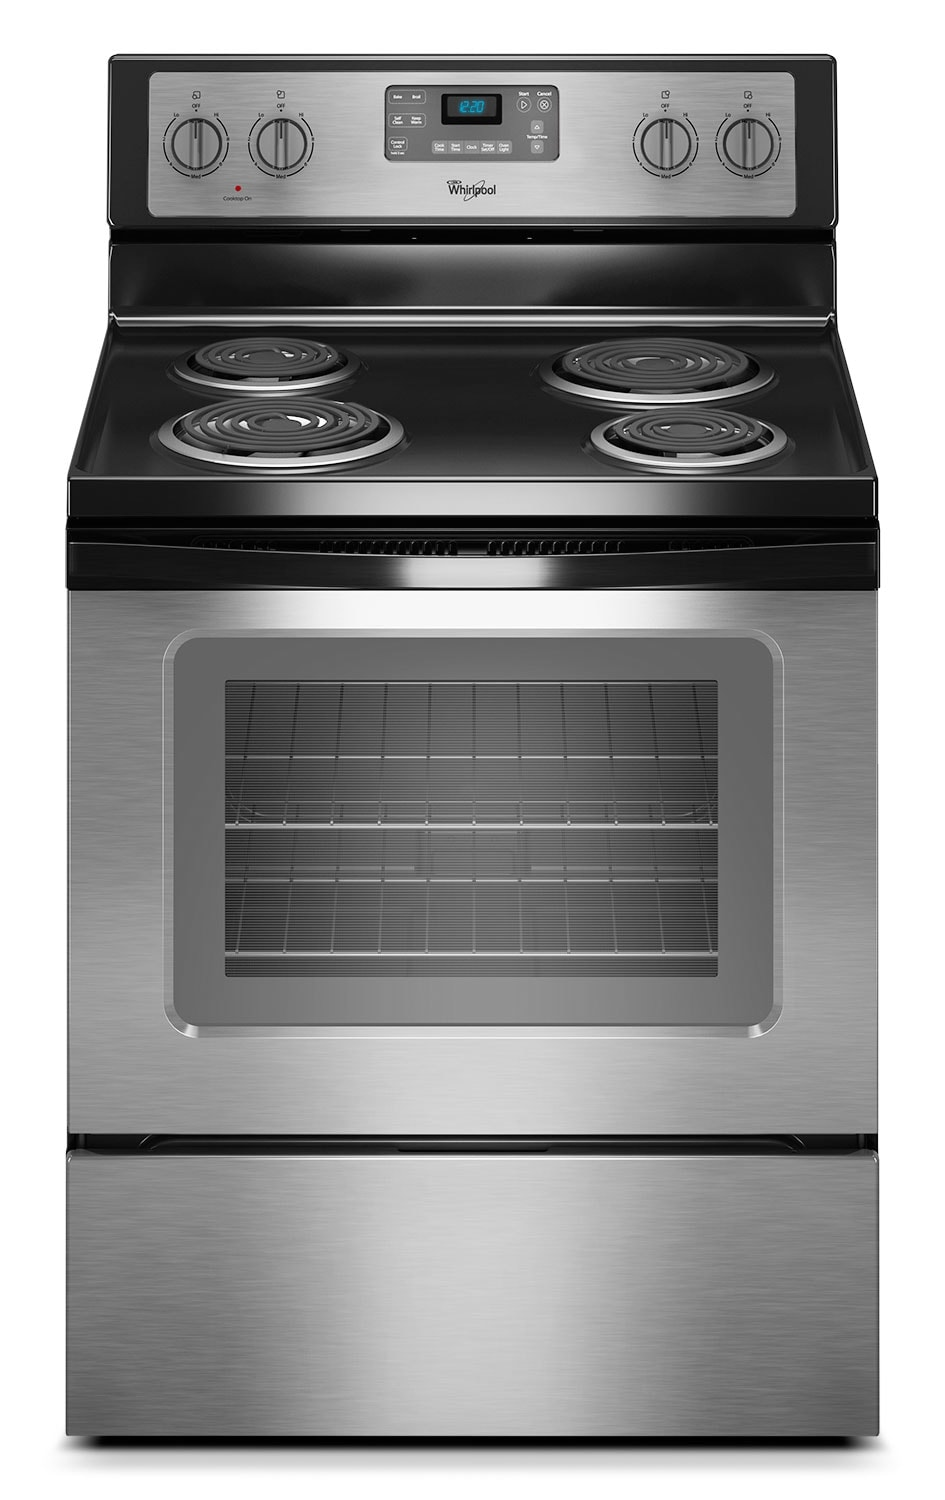 Cooking Products - Whirlpool 4.8 Cu. Ft. Electric Range with AccuBake® System - Stainless Steel